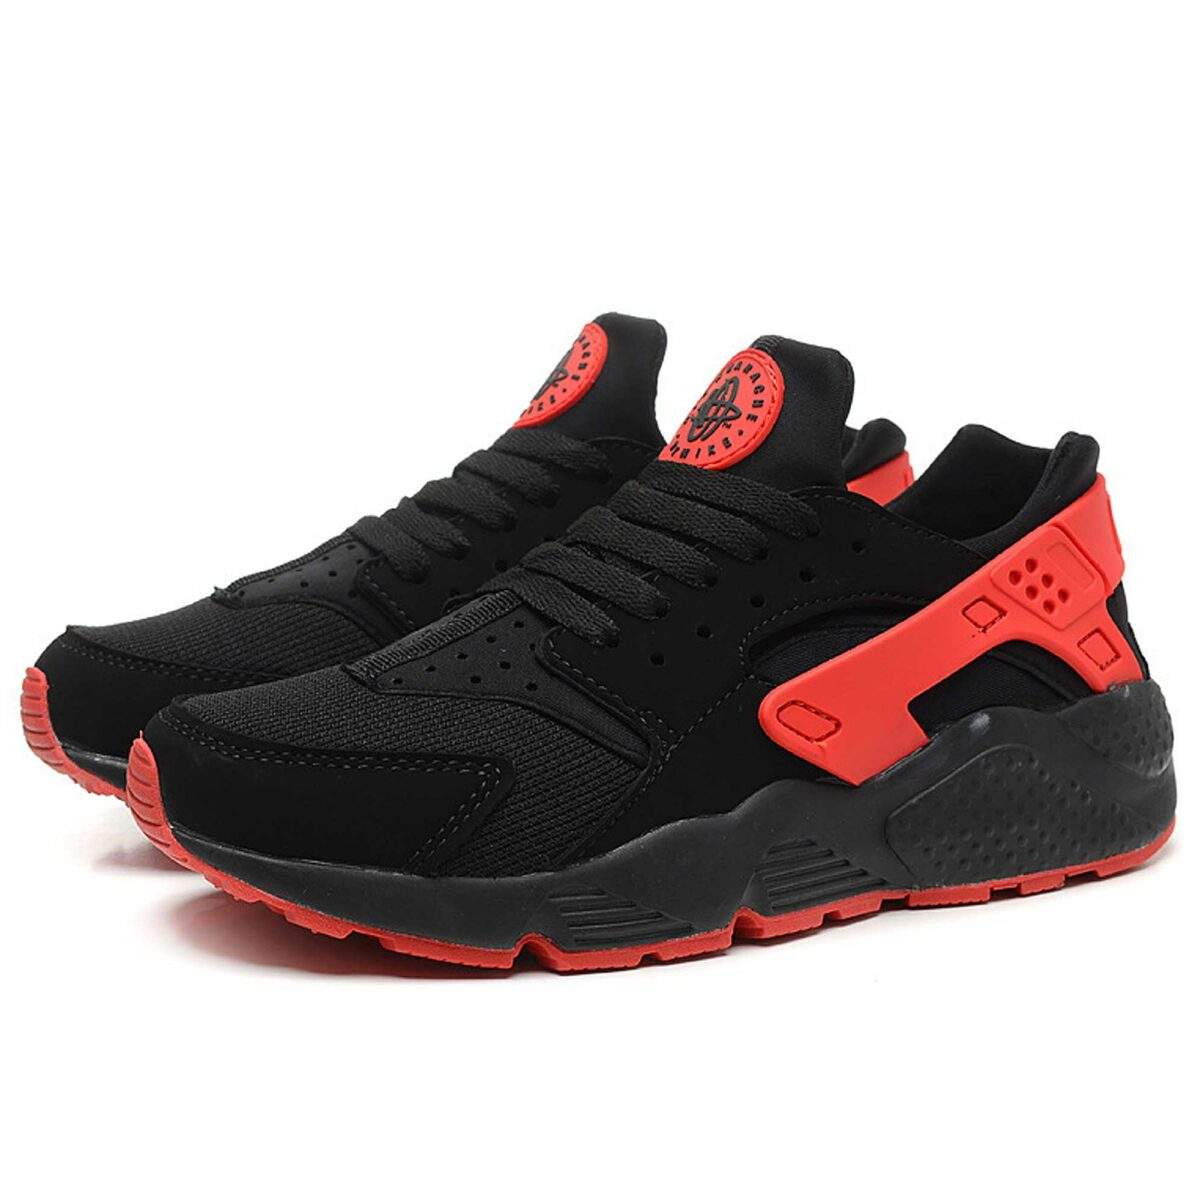 nike huarache love hate men black university red 700878_006 купить